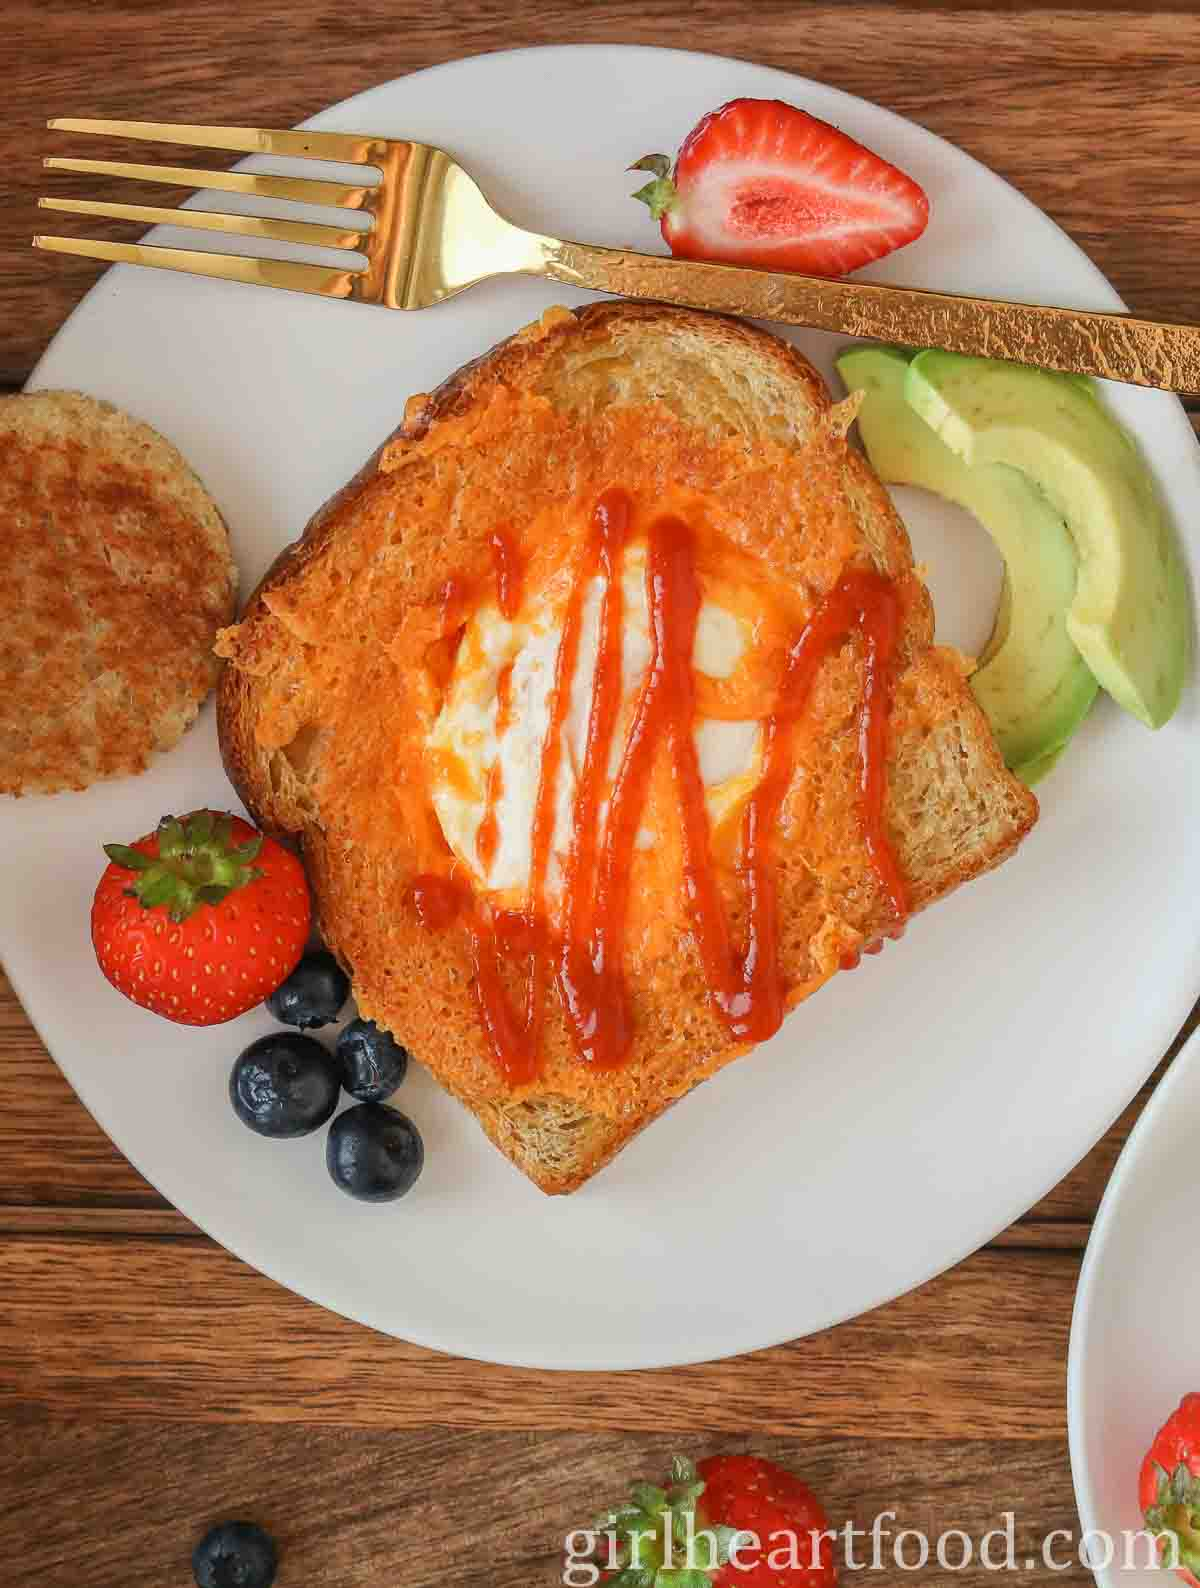 Slice of cheesy egg toast drizzled with hot sauce, next to sliced avocado, berries and a gold fork.